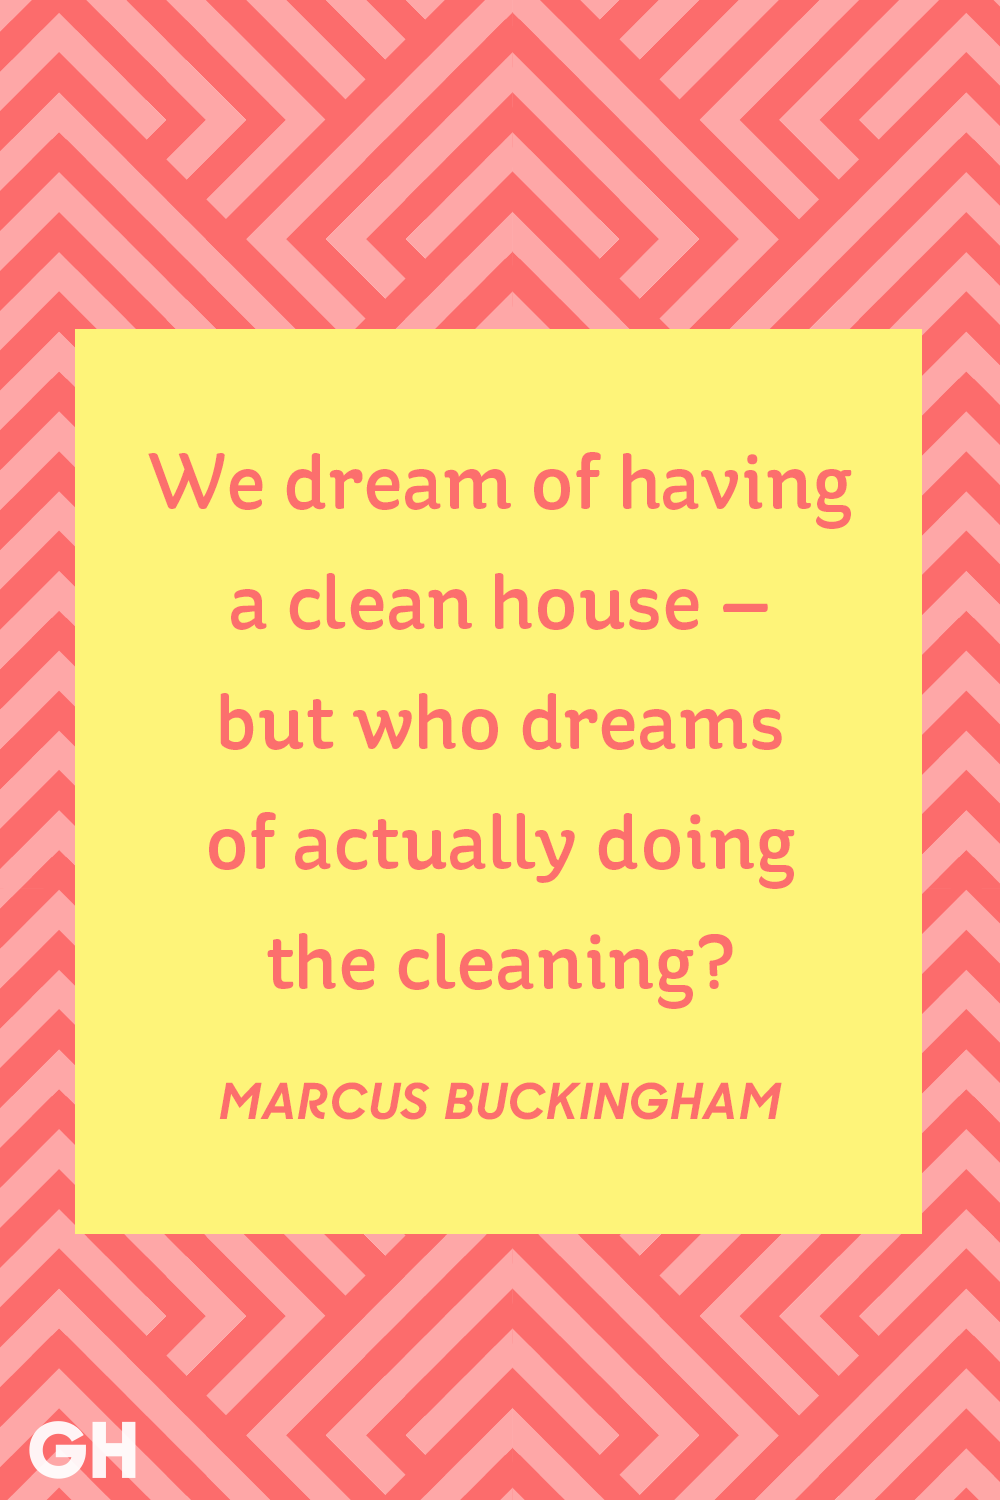 Clean House Quotes 15 Funny Cleaning Quotes   Famous Quotes About a Clean House Clean House Quotes